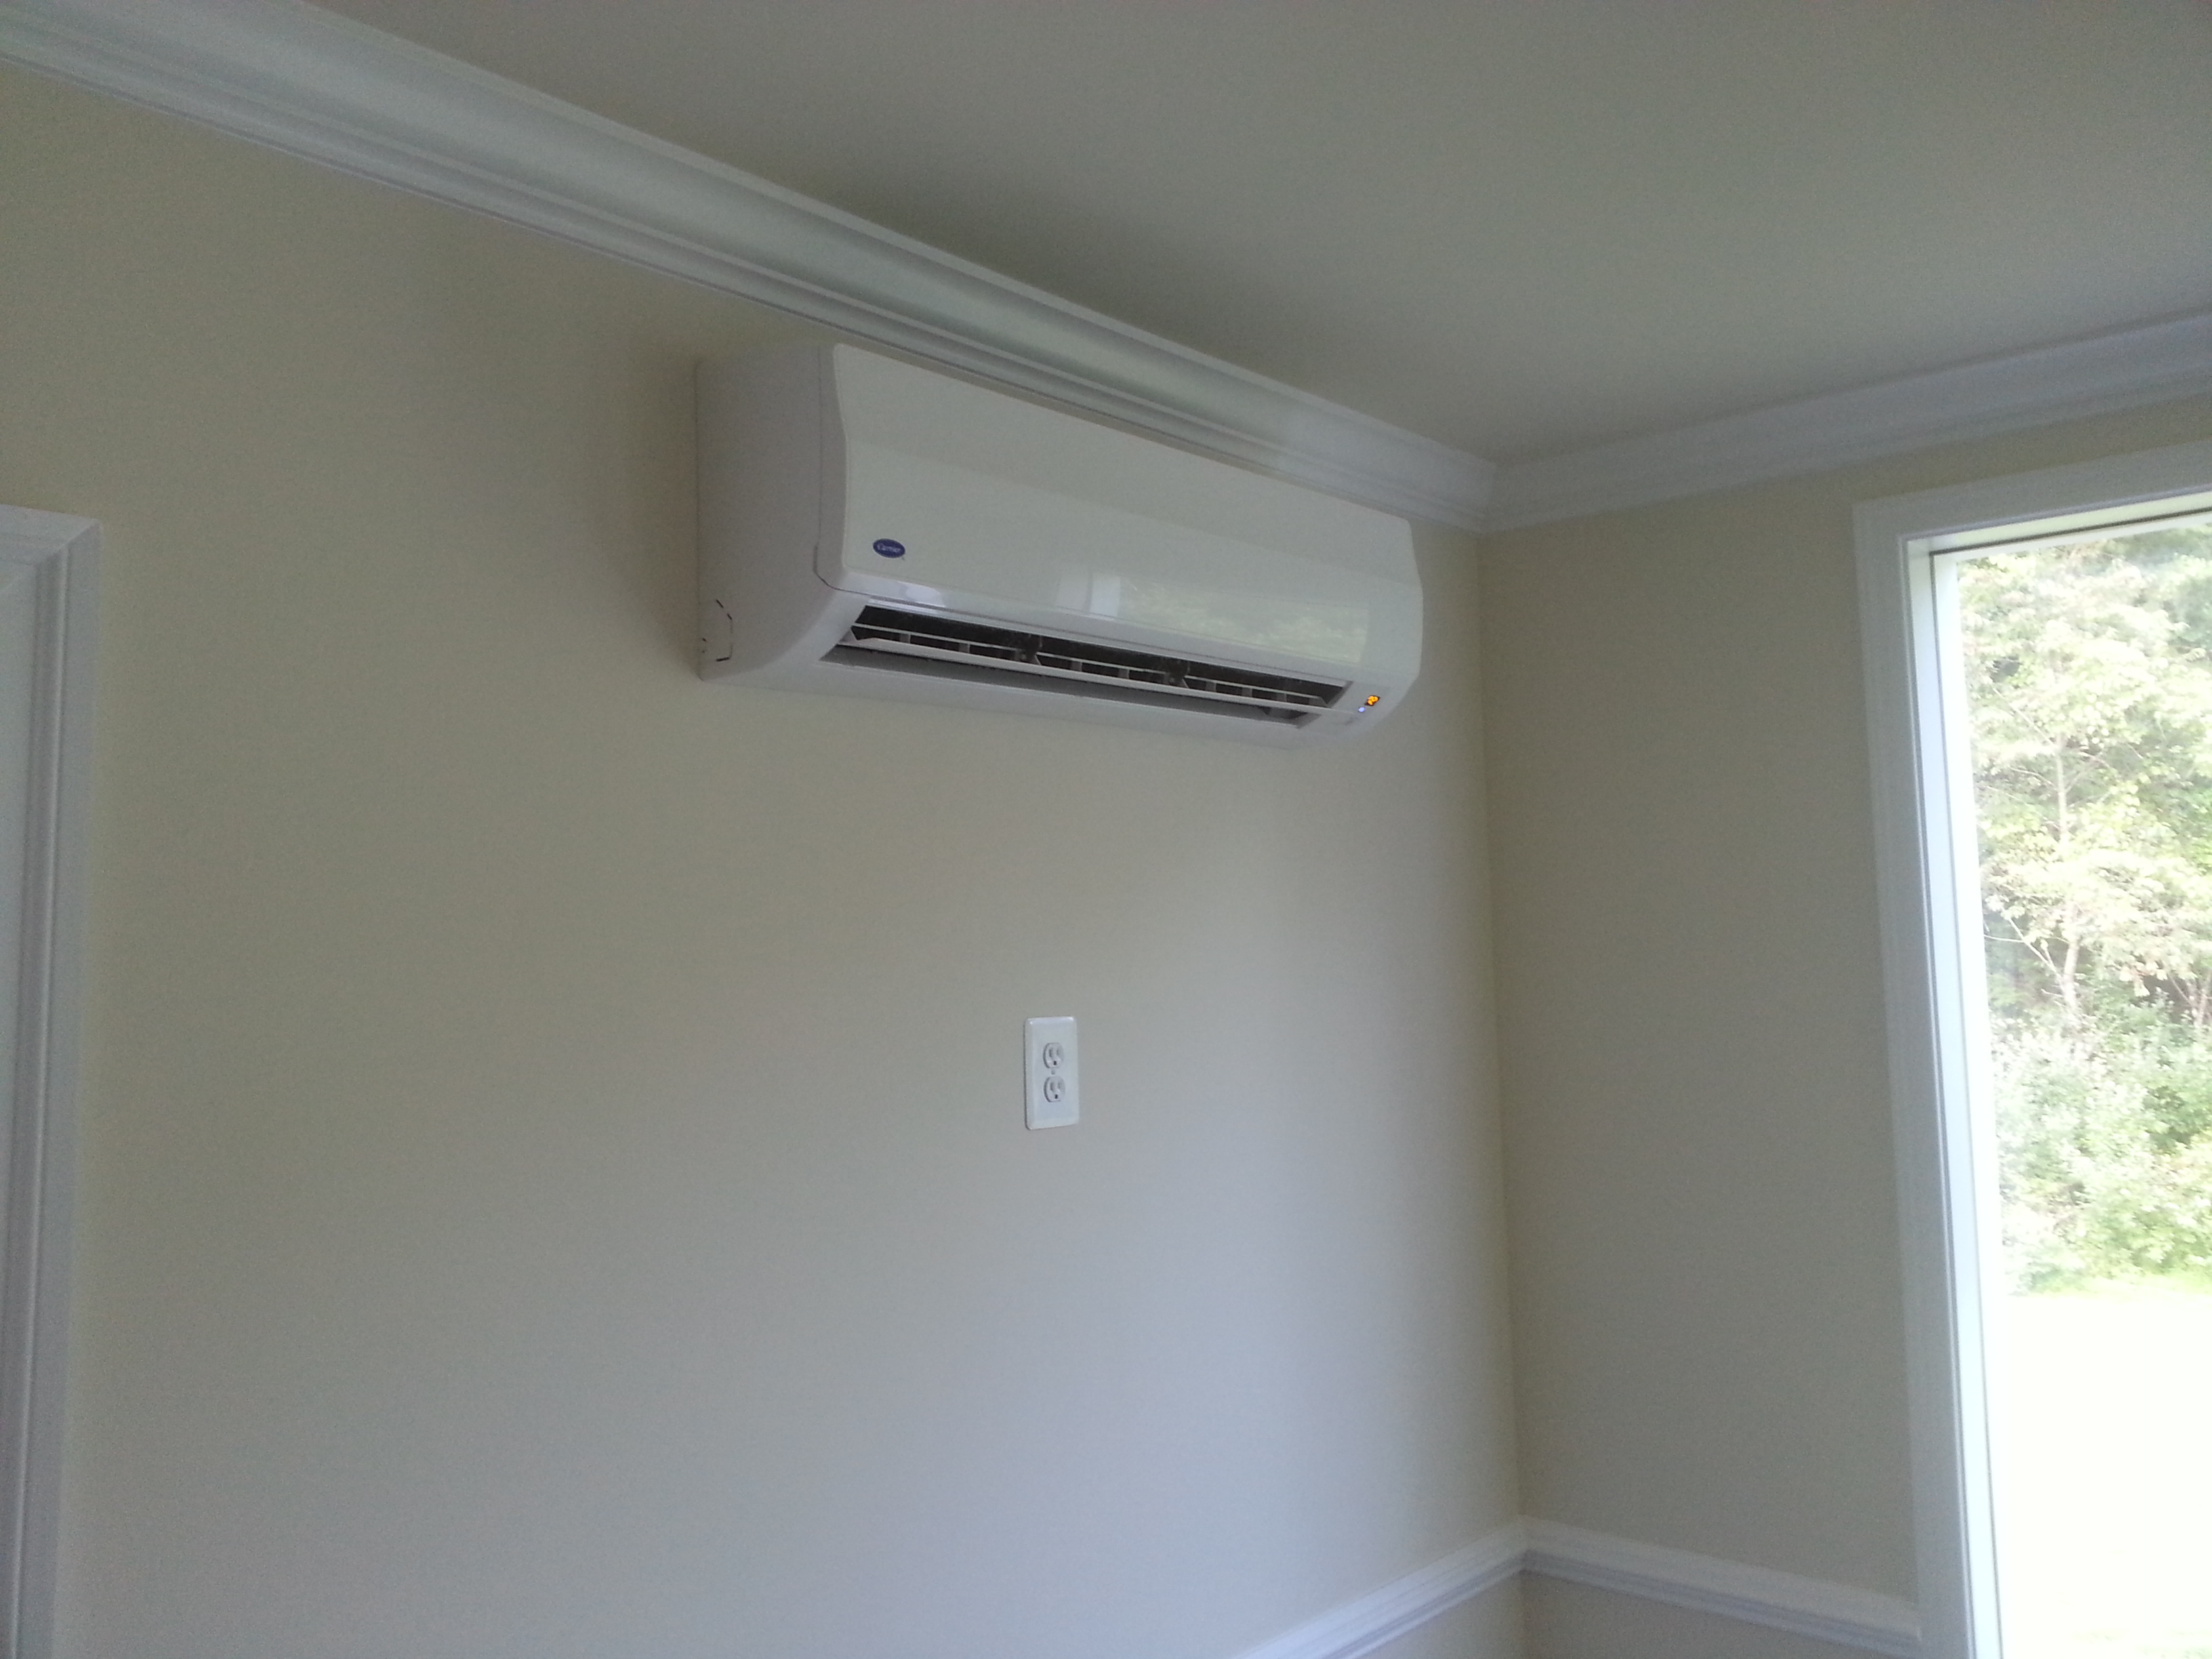 Carrier brand best a/c service